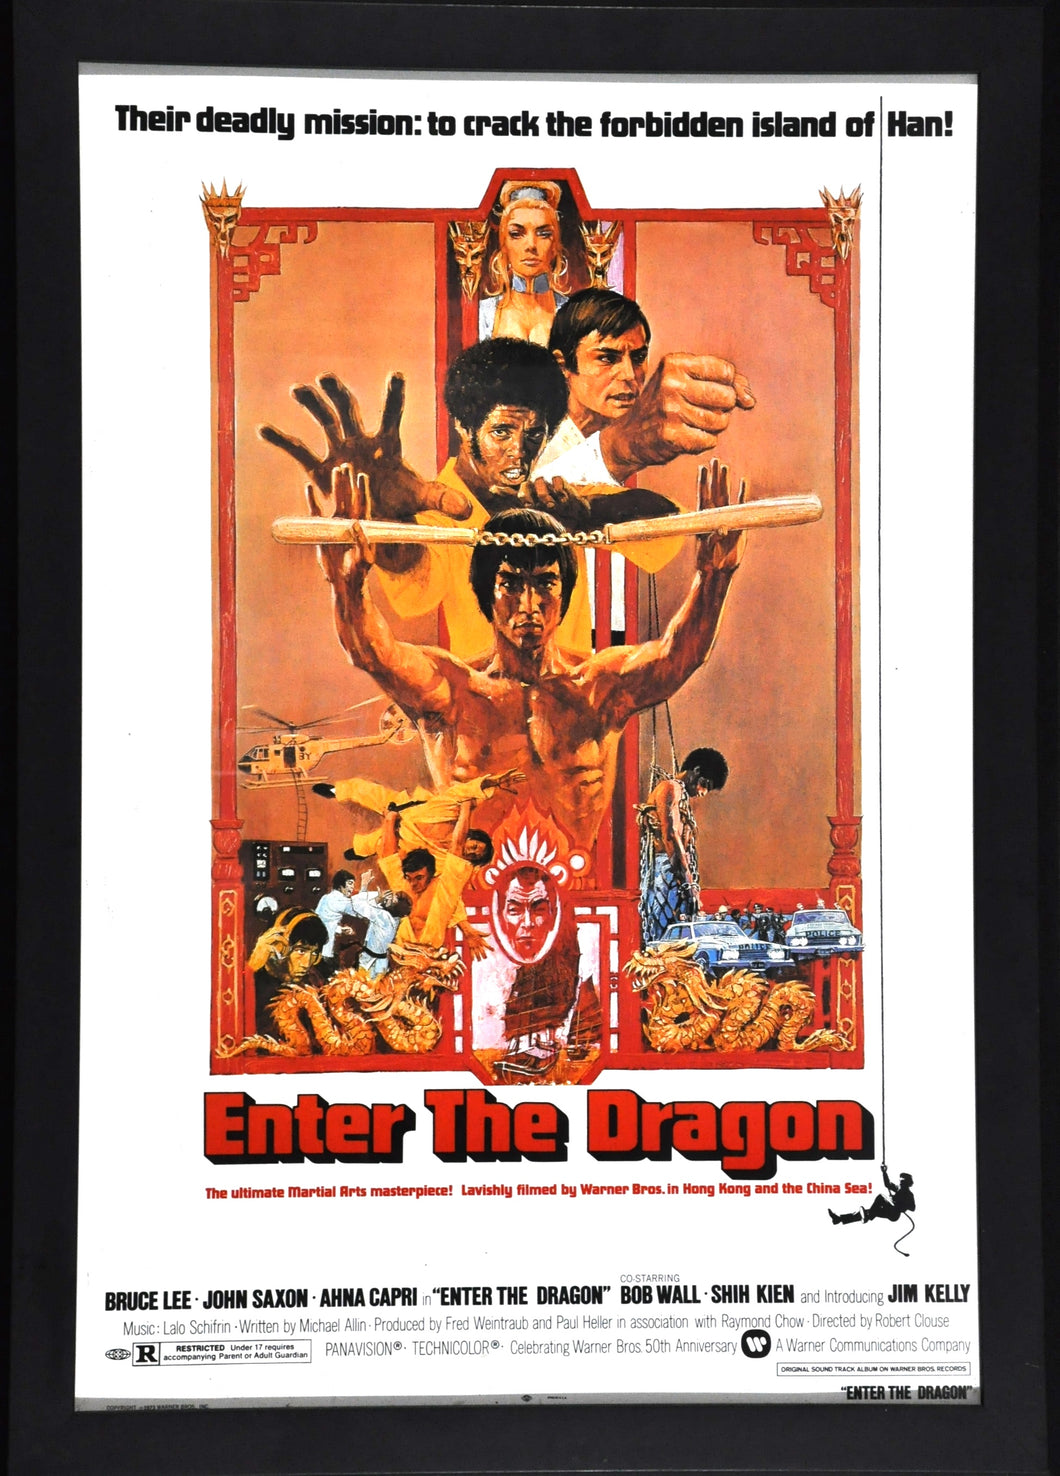 Bruce Lee Martial arts Karate Framed poster from the Enter the Dragon movie